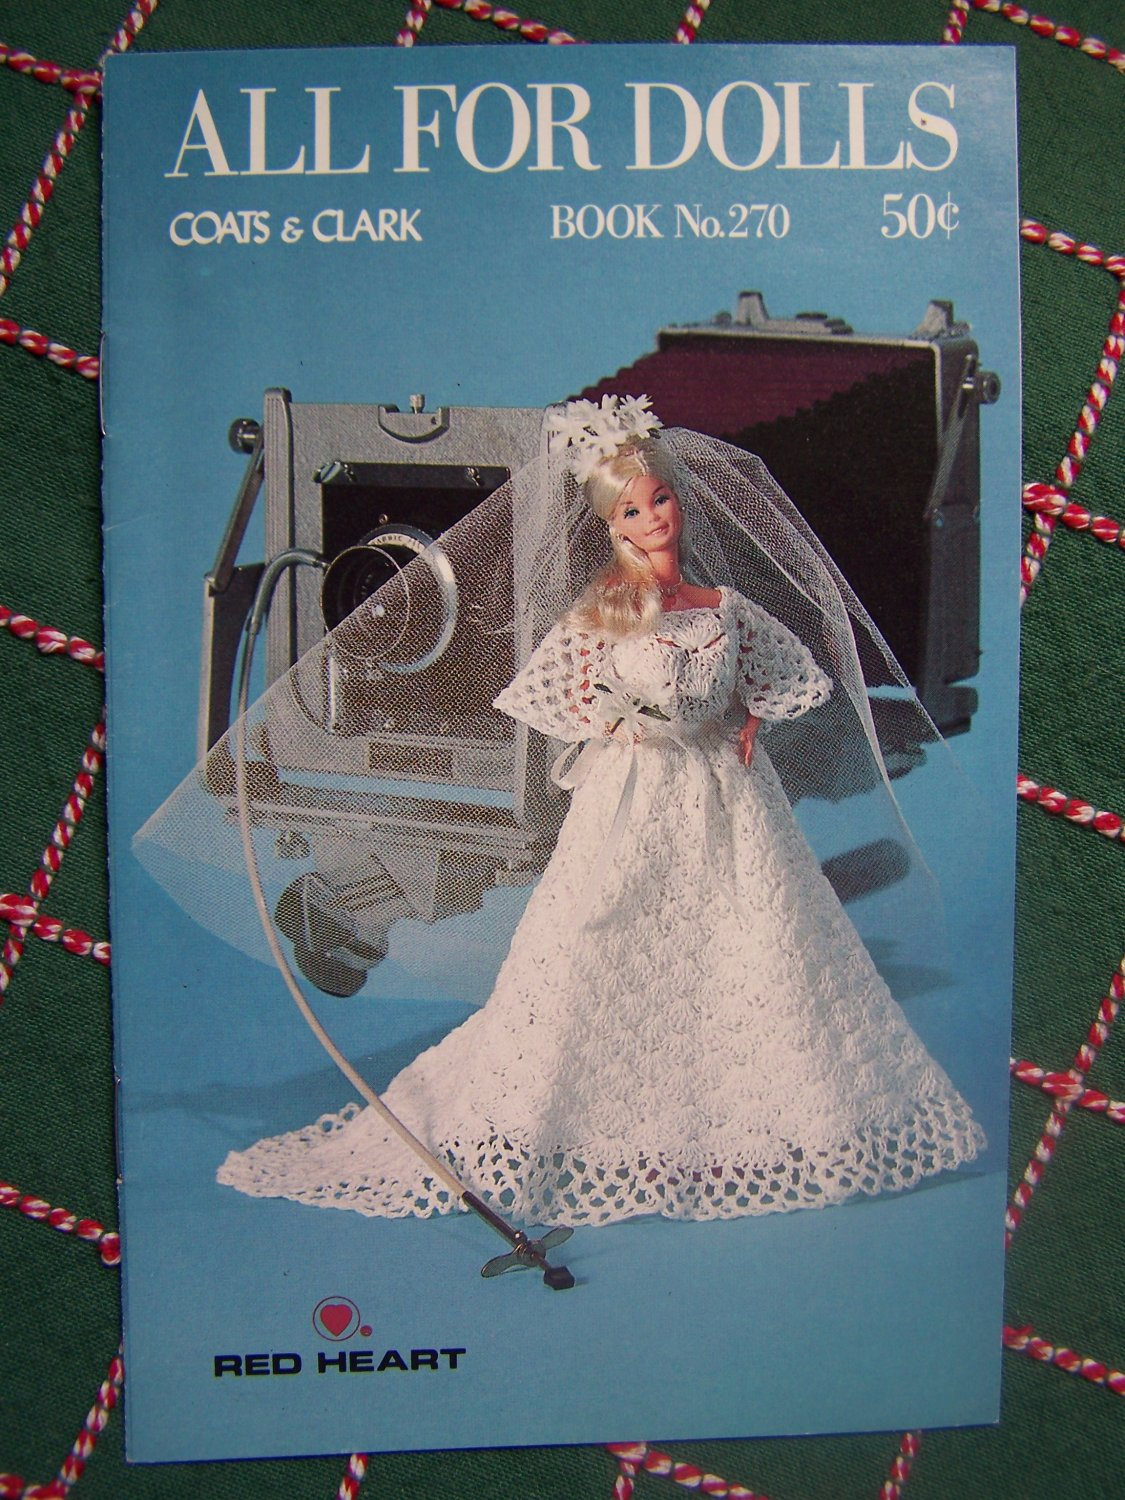 """Vintage New All For Dolls Coats & Clarks Crochet Pattern Book 270 Barbie 11.5 & Baby Doll 13"""""""